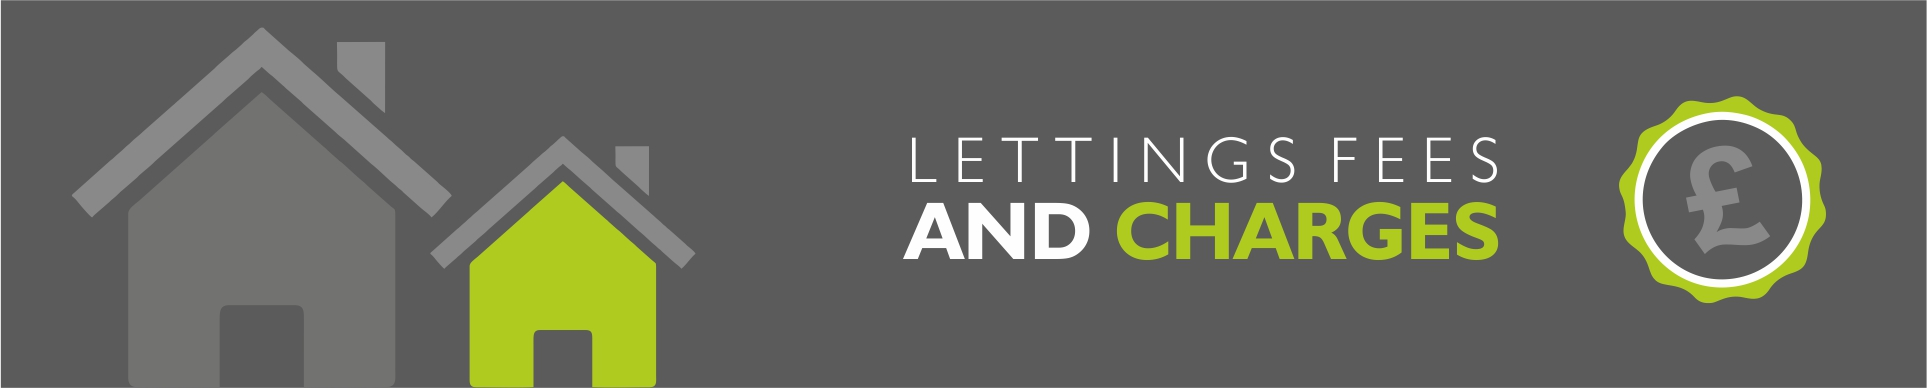 lettings_fees_new_style